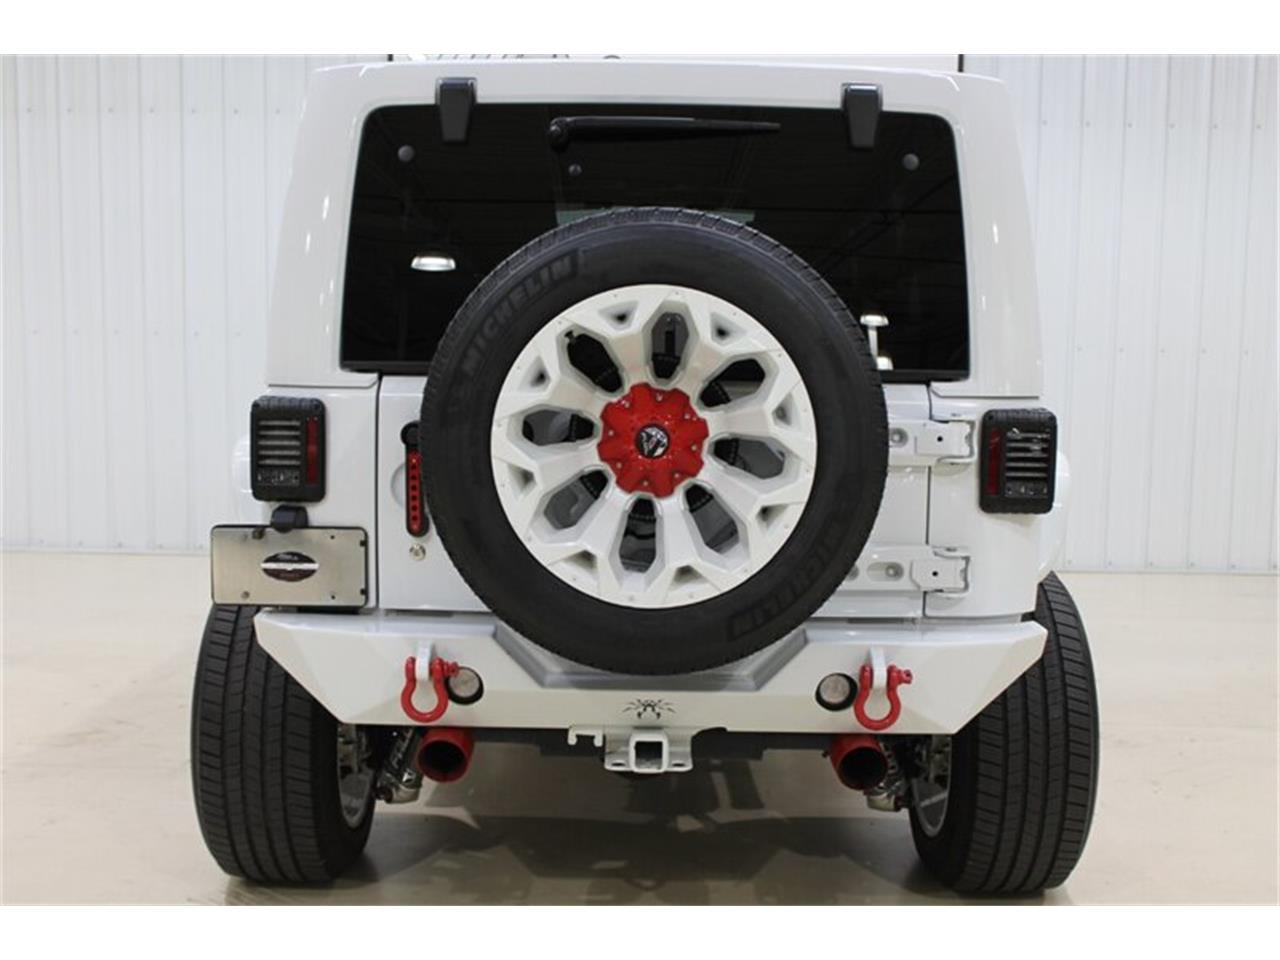 2018 Jeep Wrangler (CC-1228339) for sale in Fort Wayne, Indiana